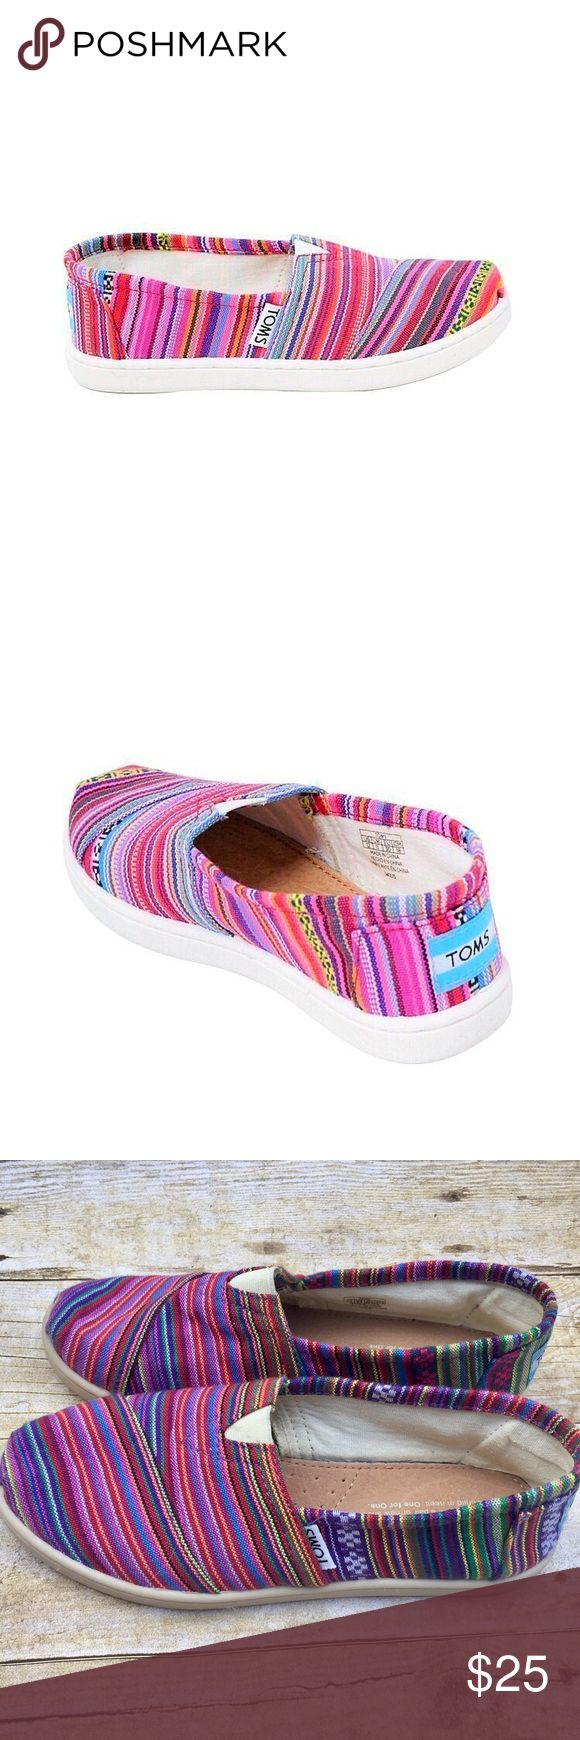 TOMS Rainbow shoes Brighten up your little ones day with these rainbow woven slip-ons.  In like new condition. Only worn once, no tears, stains, or marks. TOMS Shoes